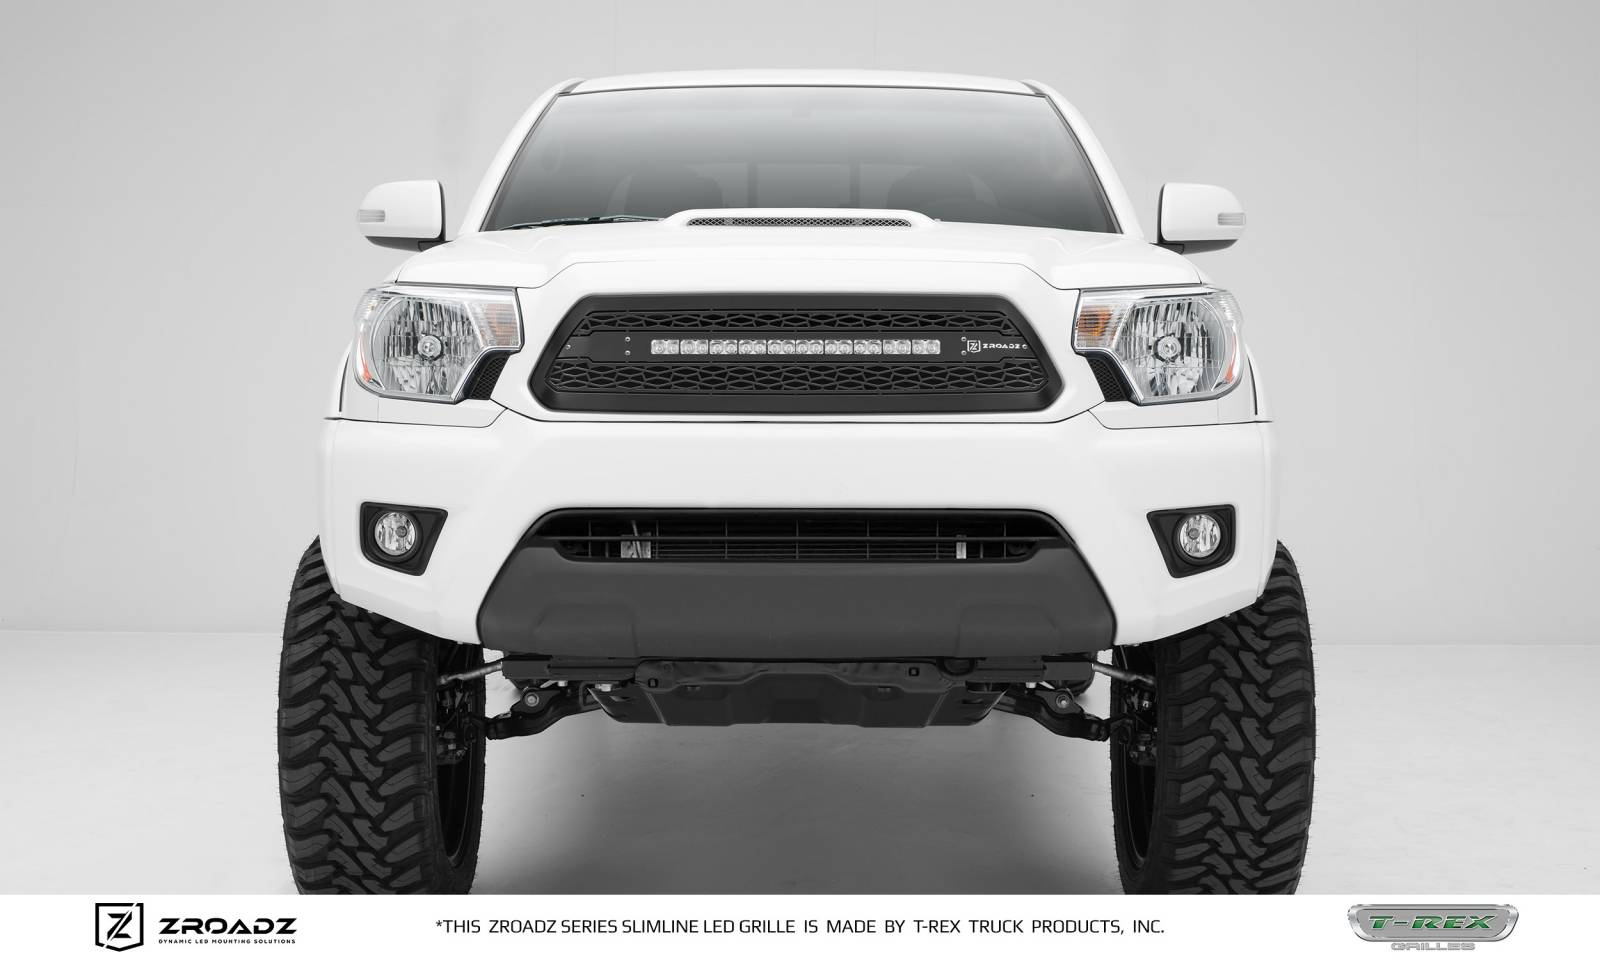 Toyota Tacoma Zroadz Series Main Insert Grille W One 20 Inch E Locker Wiring Harness Slim Line Single Row Led Light Bar Includes Universal